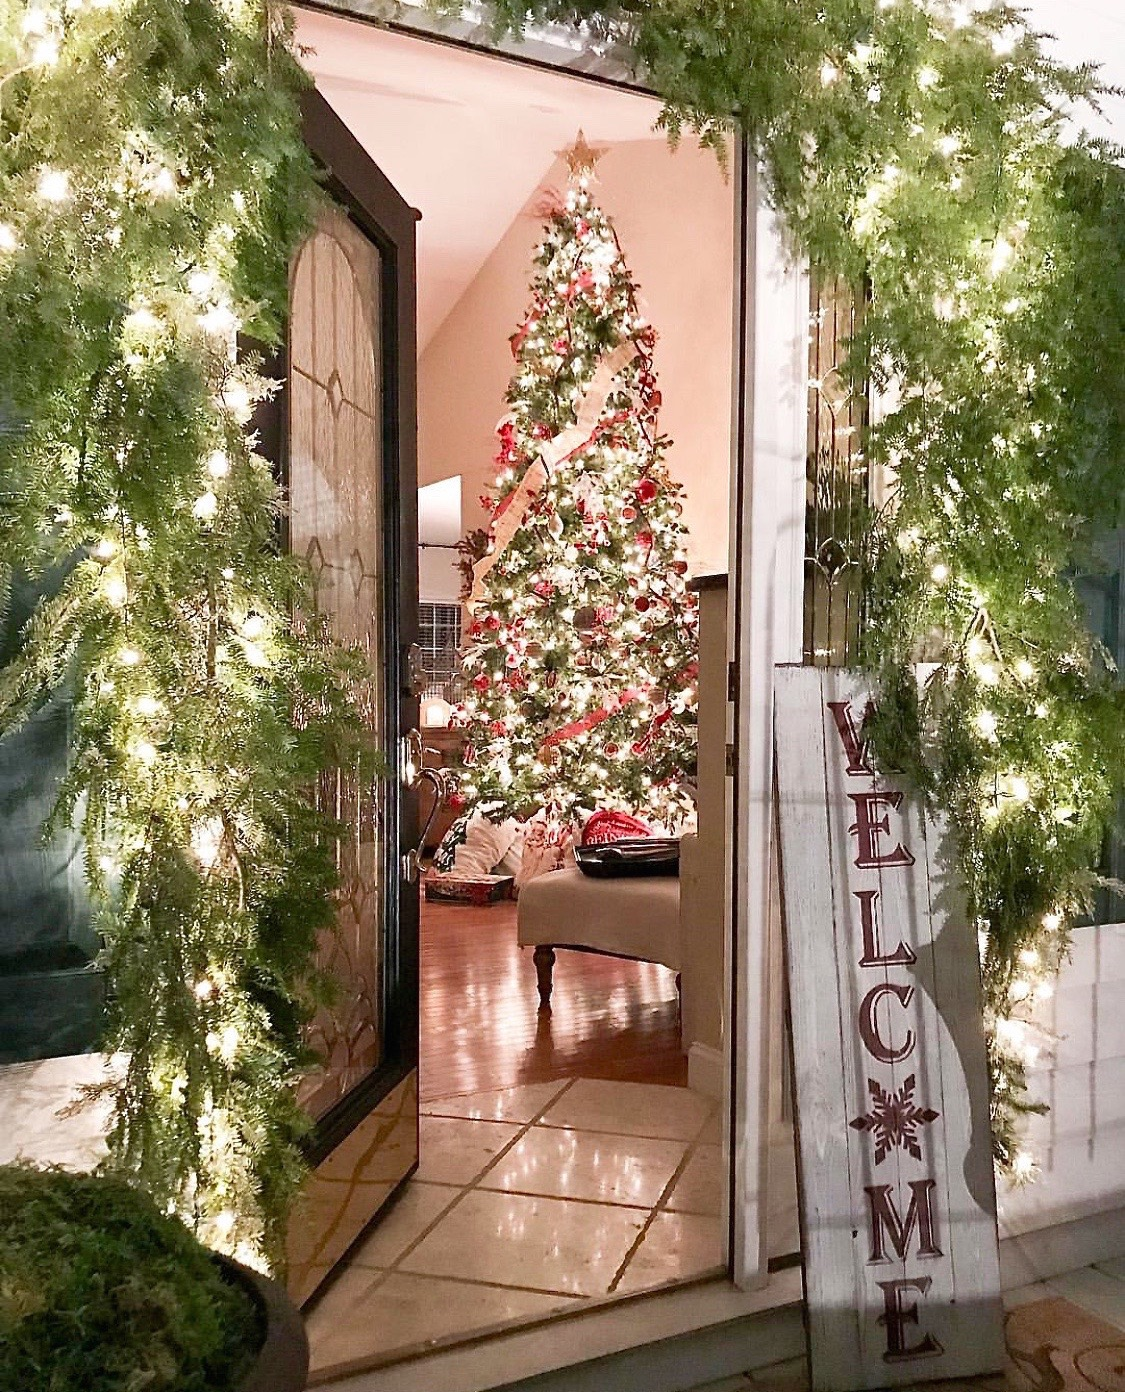 Favorite Holiday Houses - Kristy Wicks